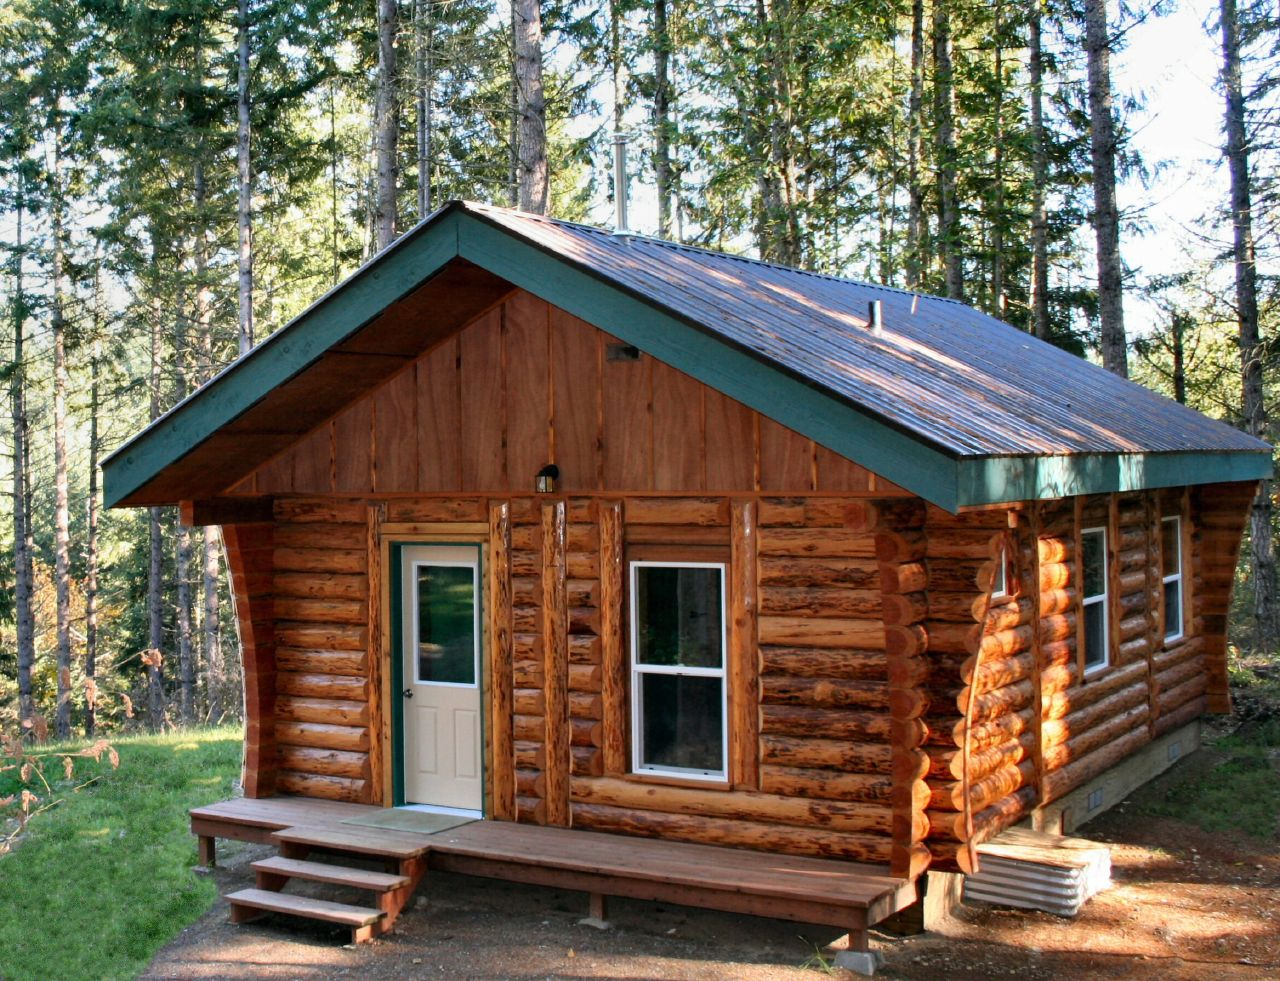 Log cabin designs maine design and ideas for Design a log cabin